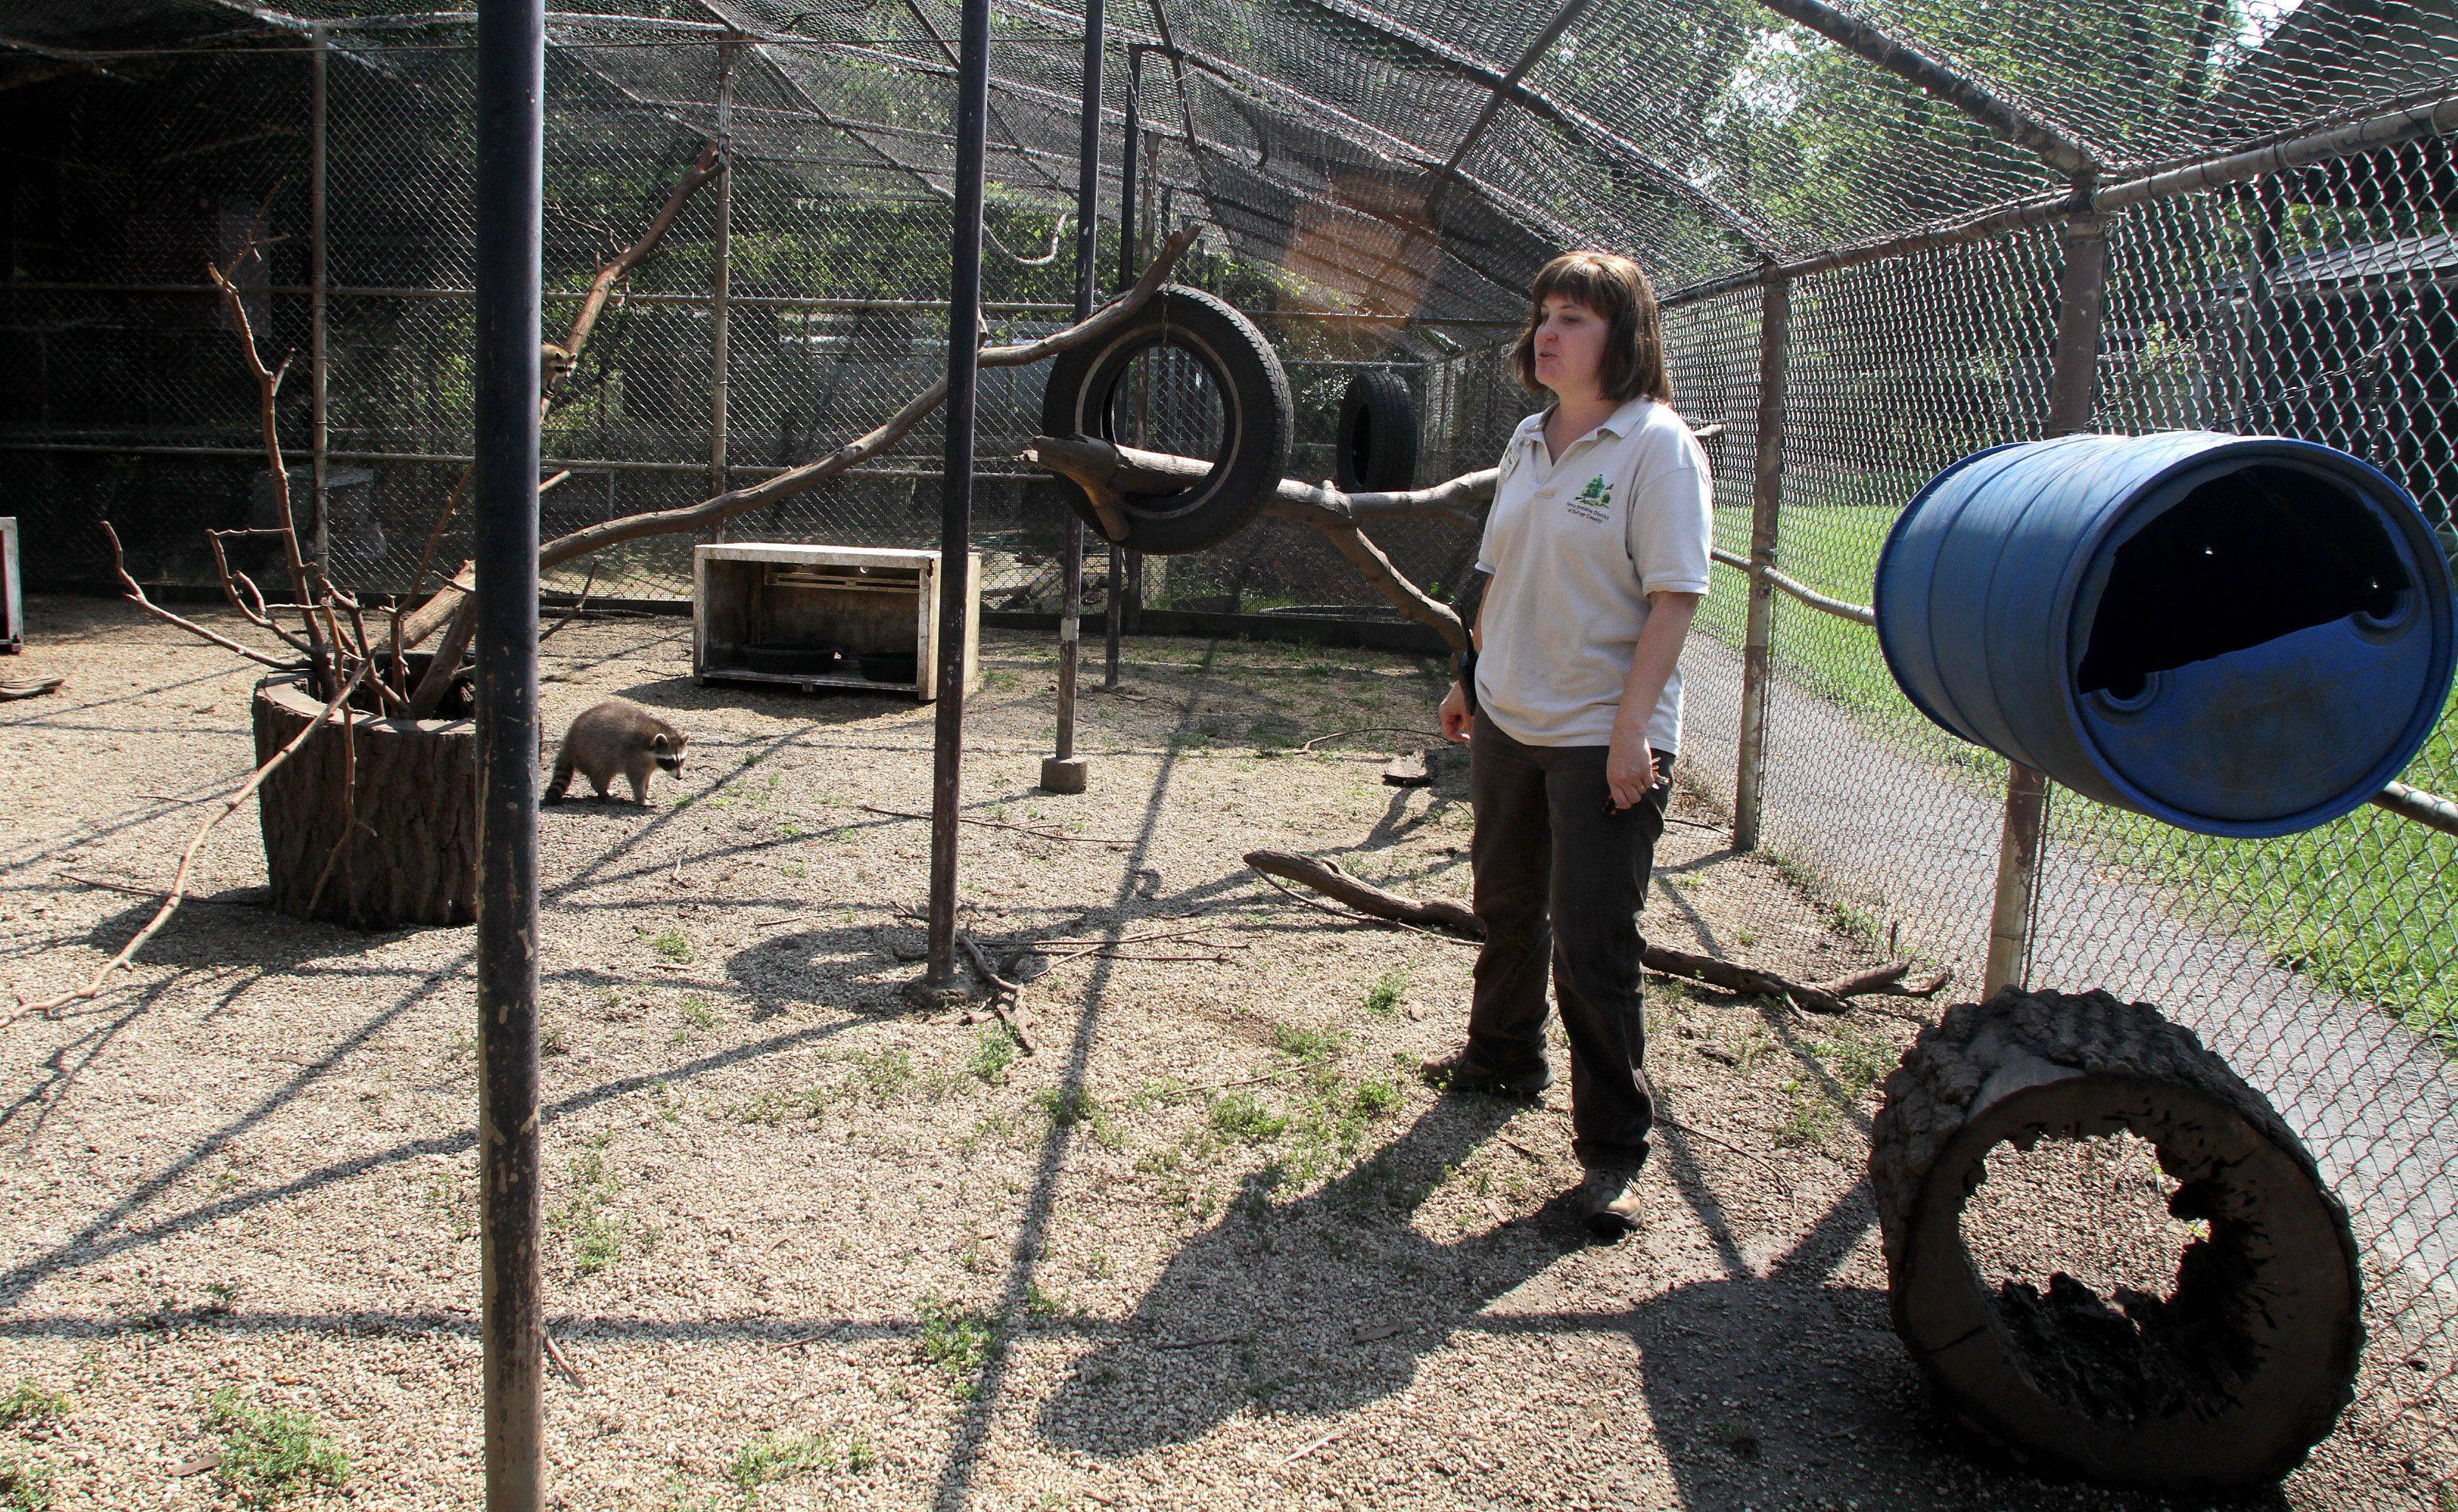 Wildlife specialist Rose Augustine takes a look around a raccoon cage in the outdoor rehab area where animals spend the weeks and months before they are released to the wild.